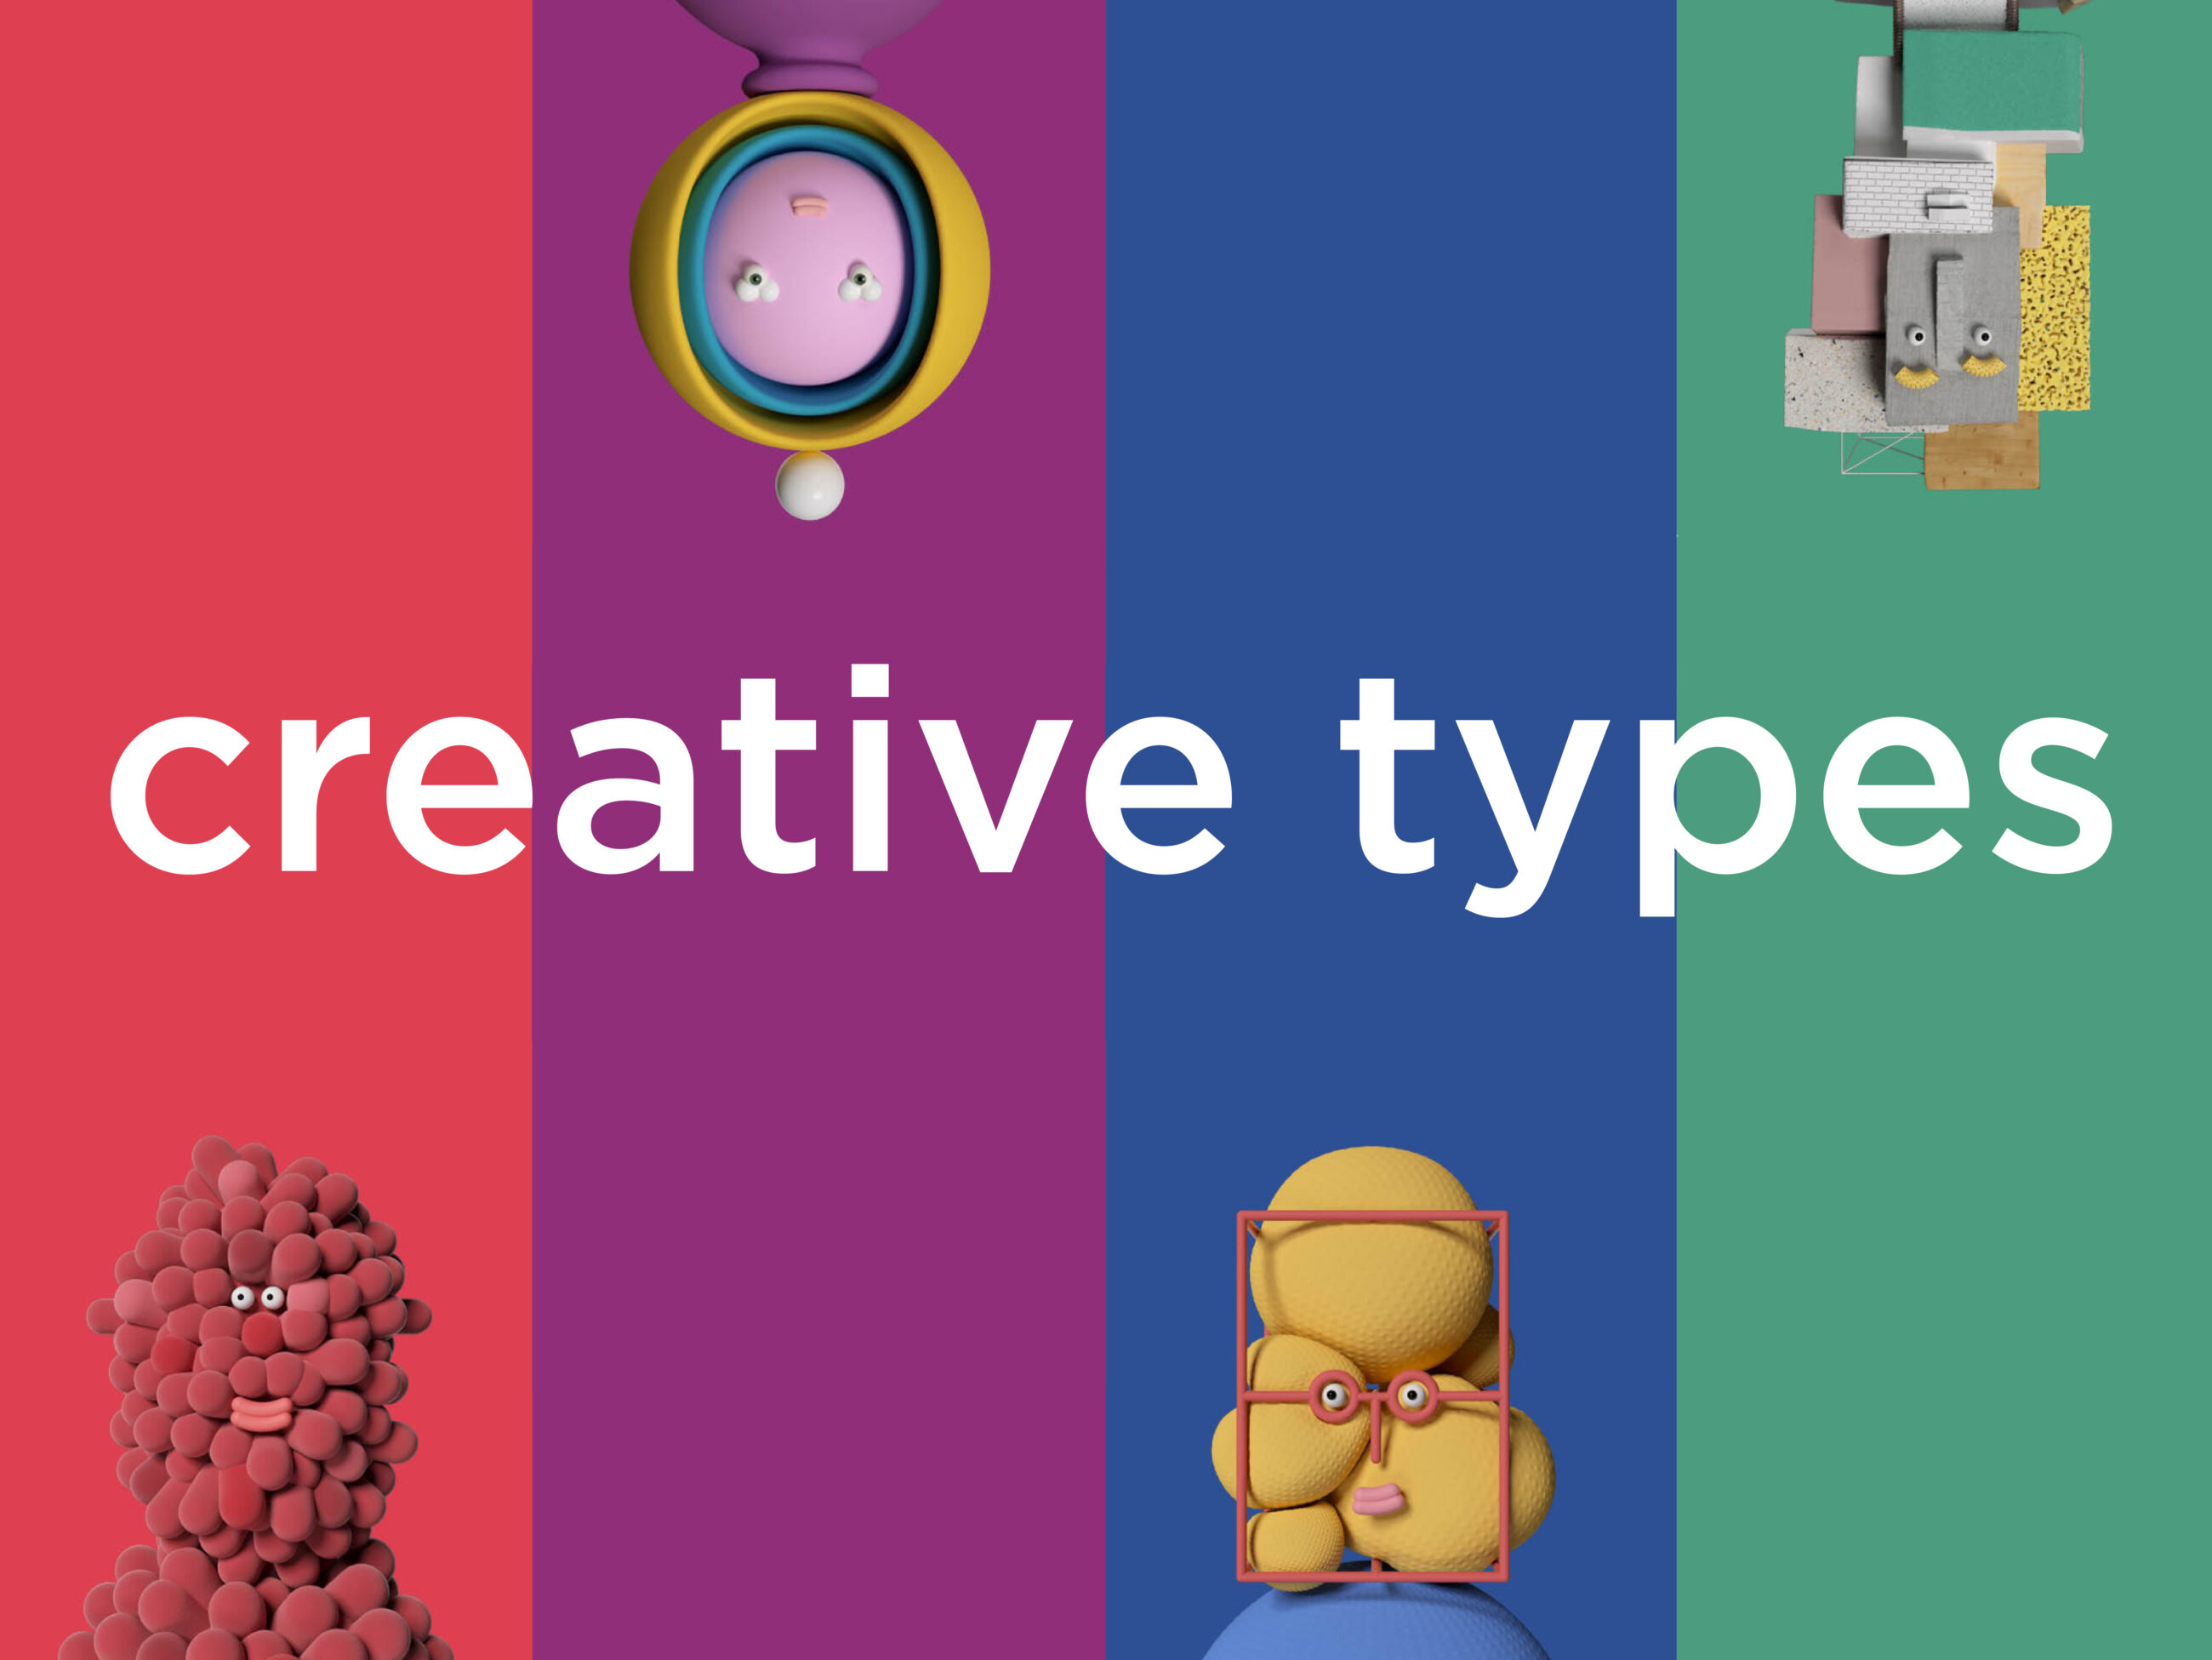 Creative Types - What's Yours?